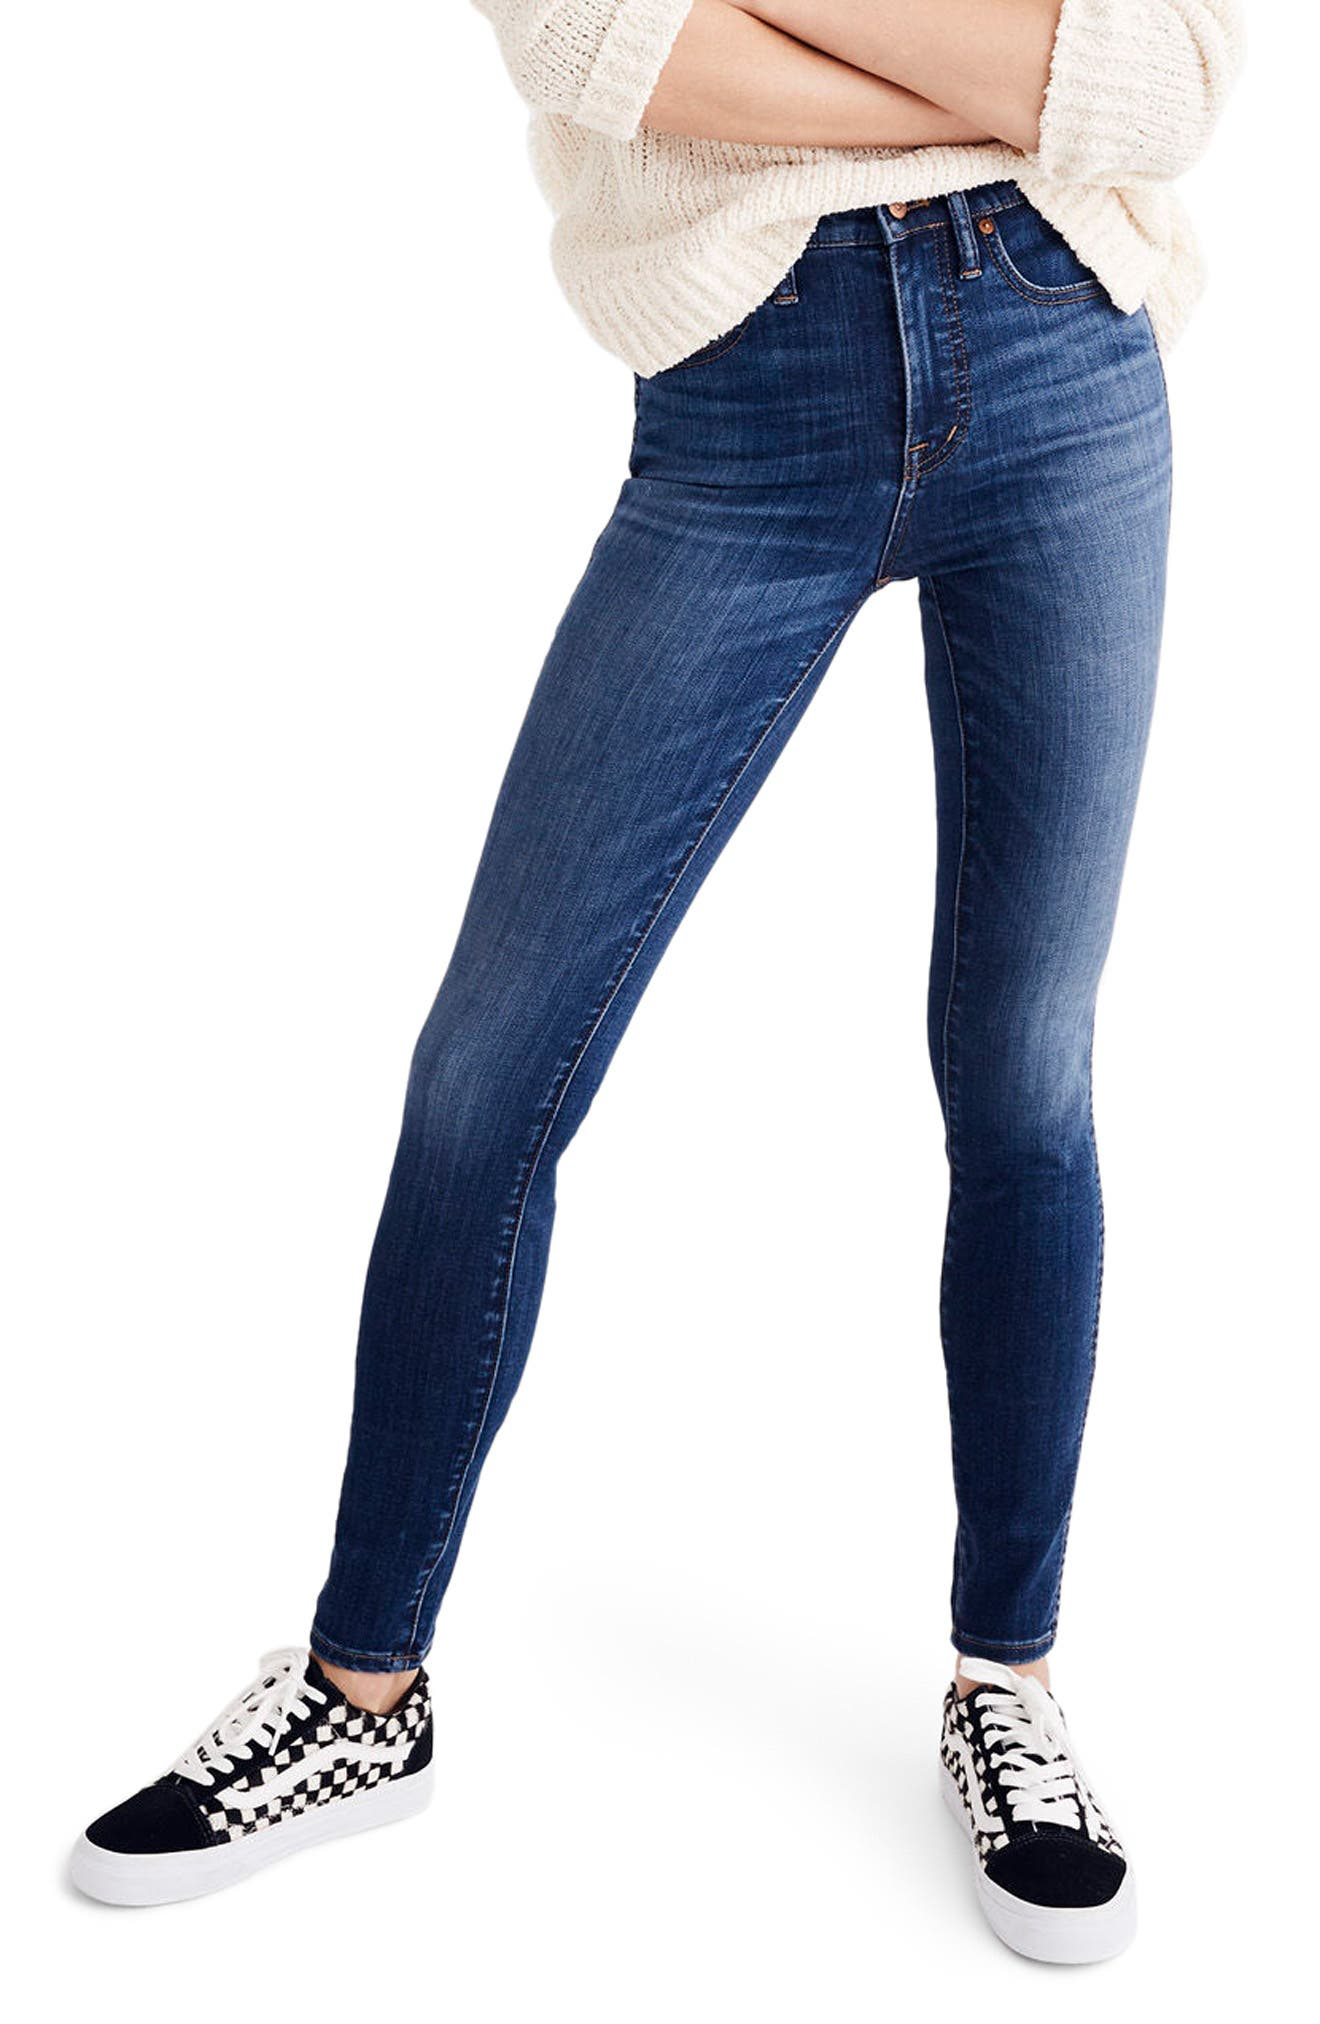 10-Inch High Waist Skinny Jeans,                             Alternate thumbnail 2, color,                             Danny